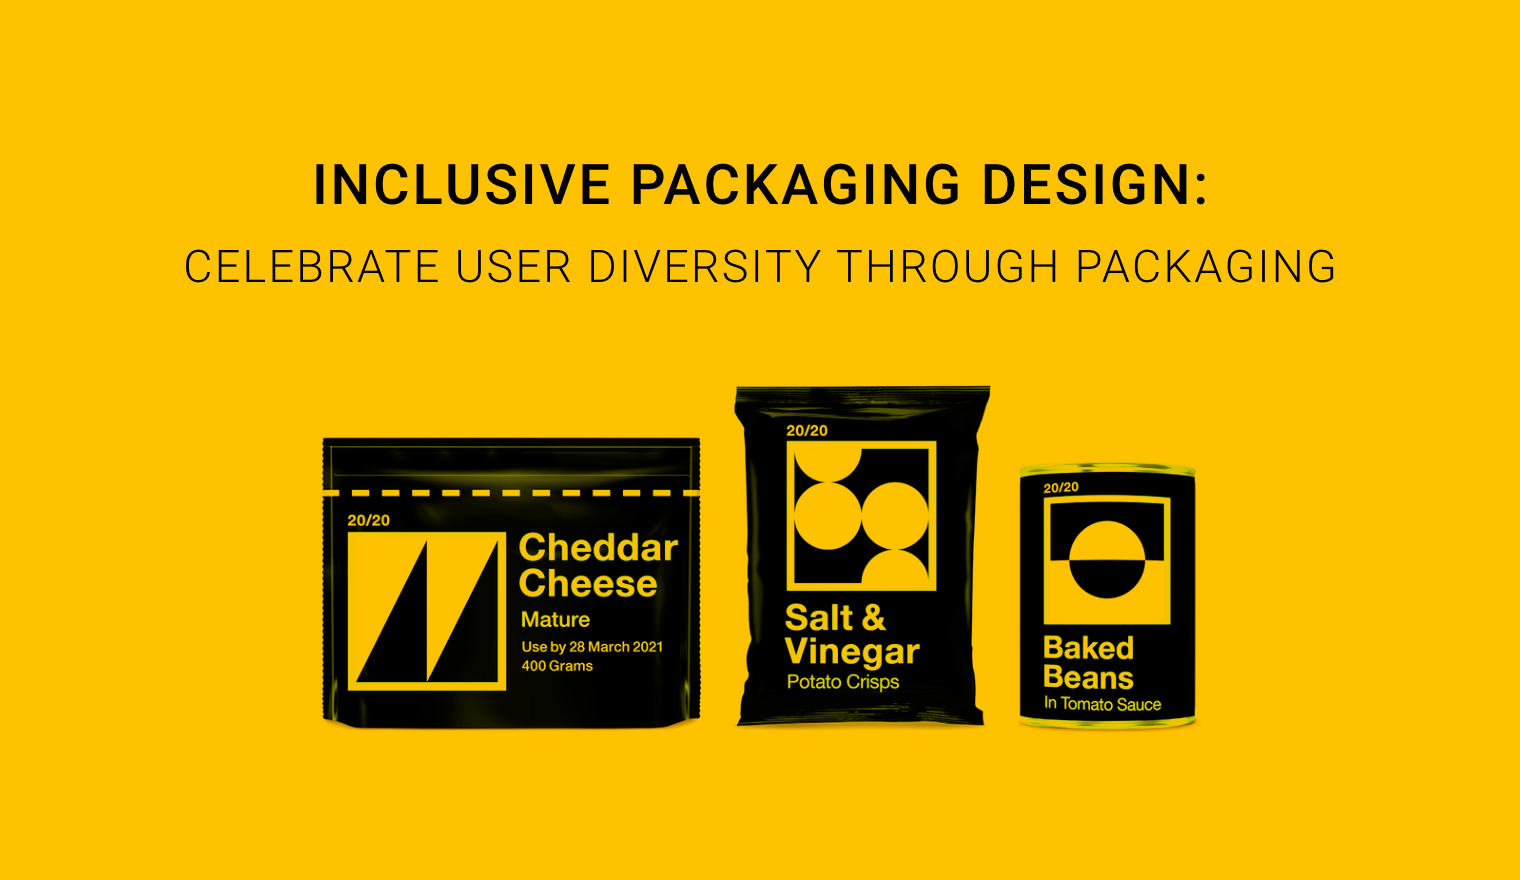 Inclusive Design: 5 packaging designs that celebrate user diversity